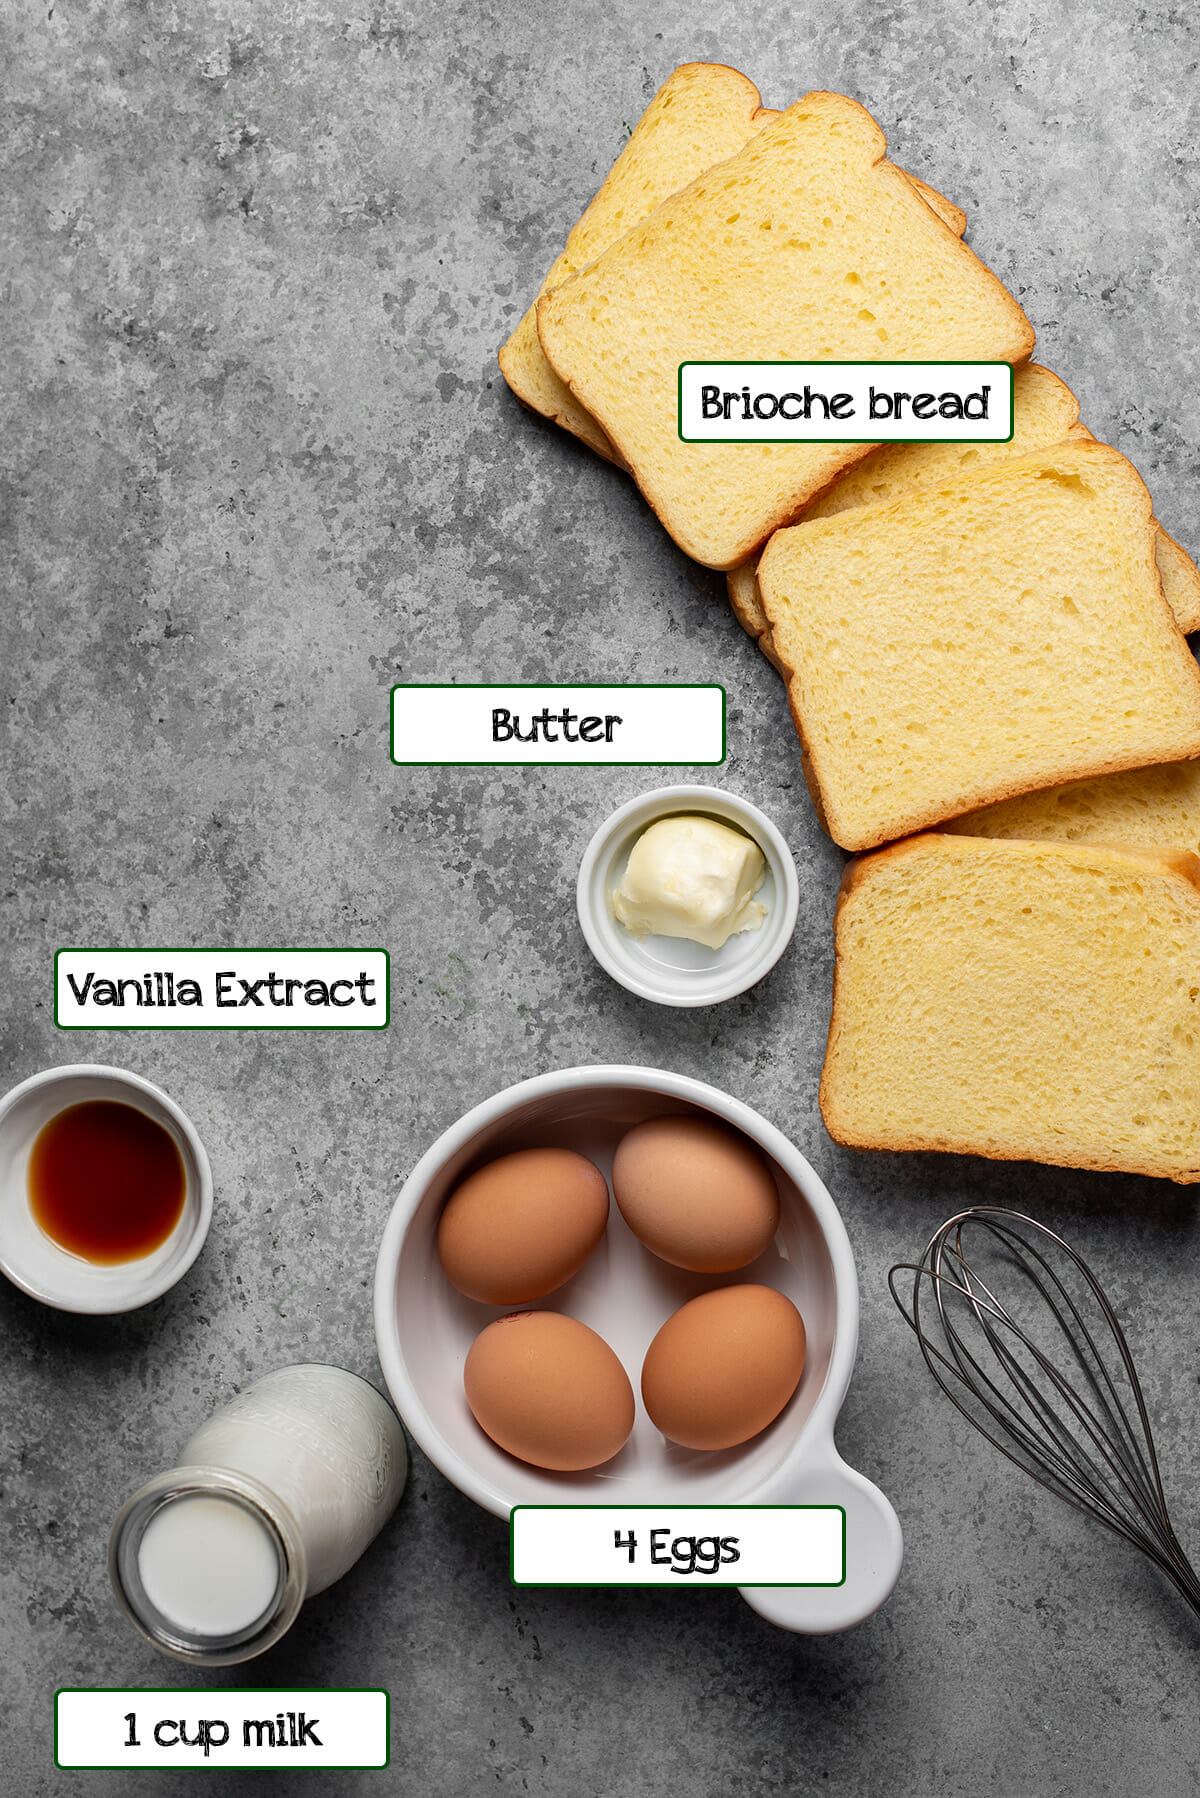 All the ingredients to make French toast including bread, eggs, vanilla extract, milk and butter